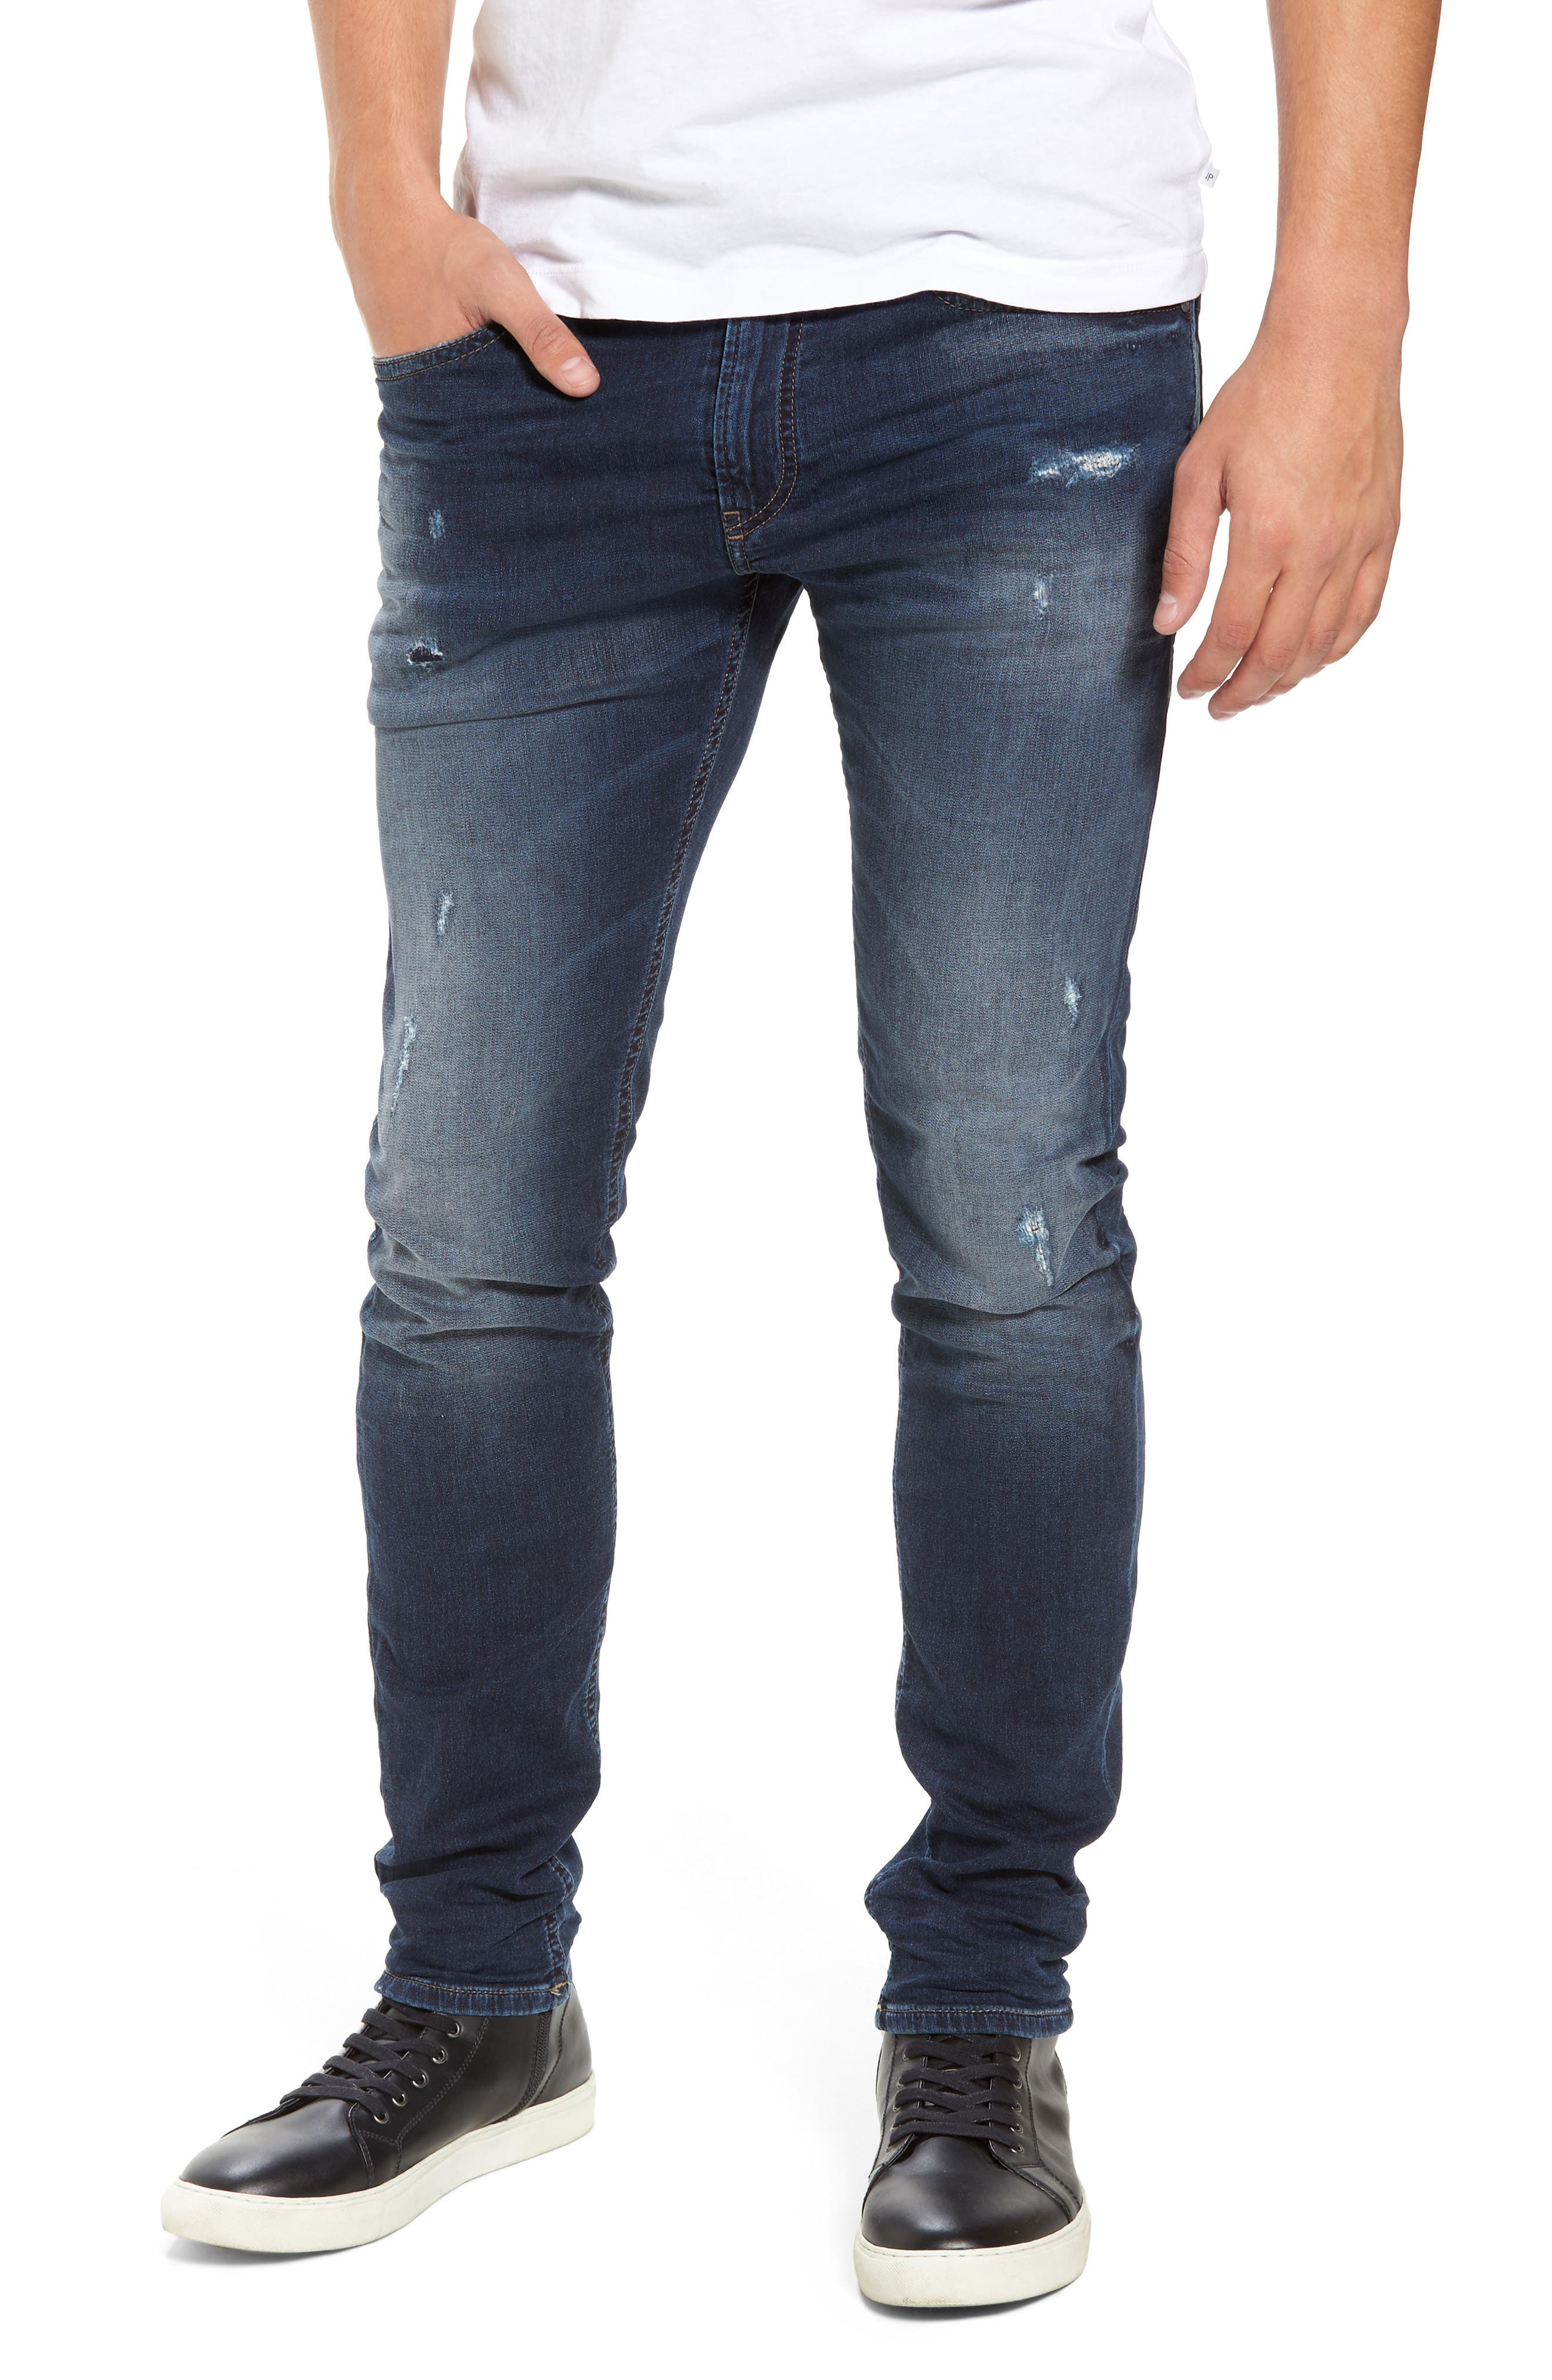 Thommer Slim Fit Jeans,                             Main thumbnail 1, color,                             0686W